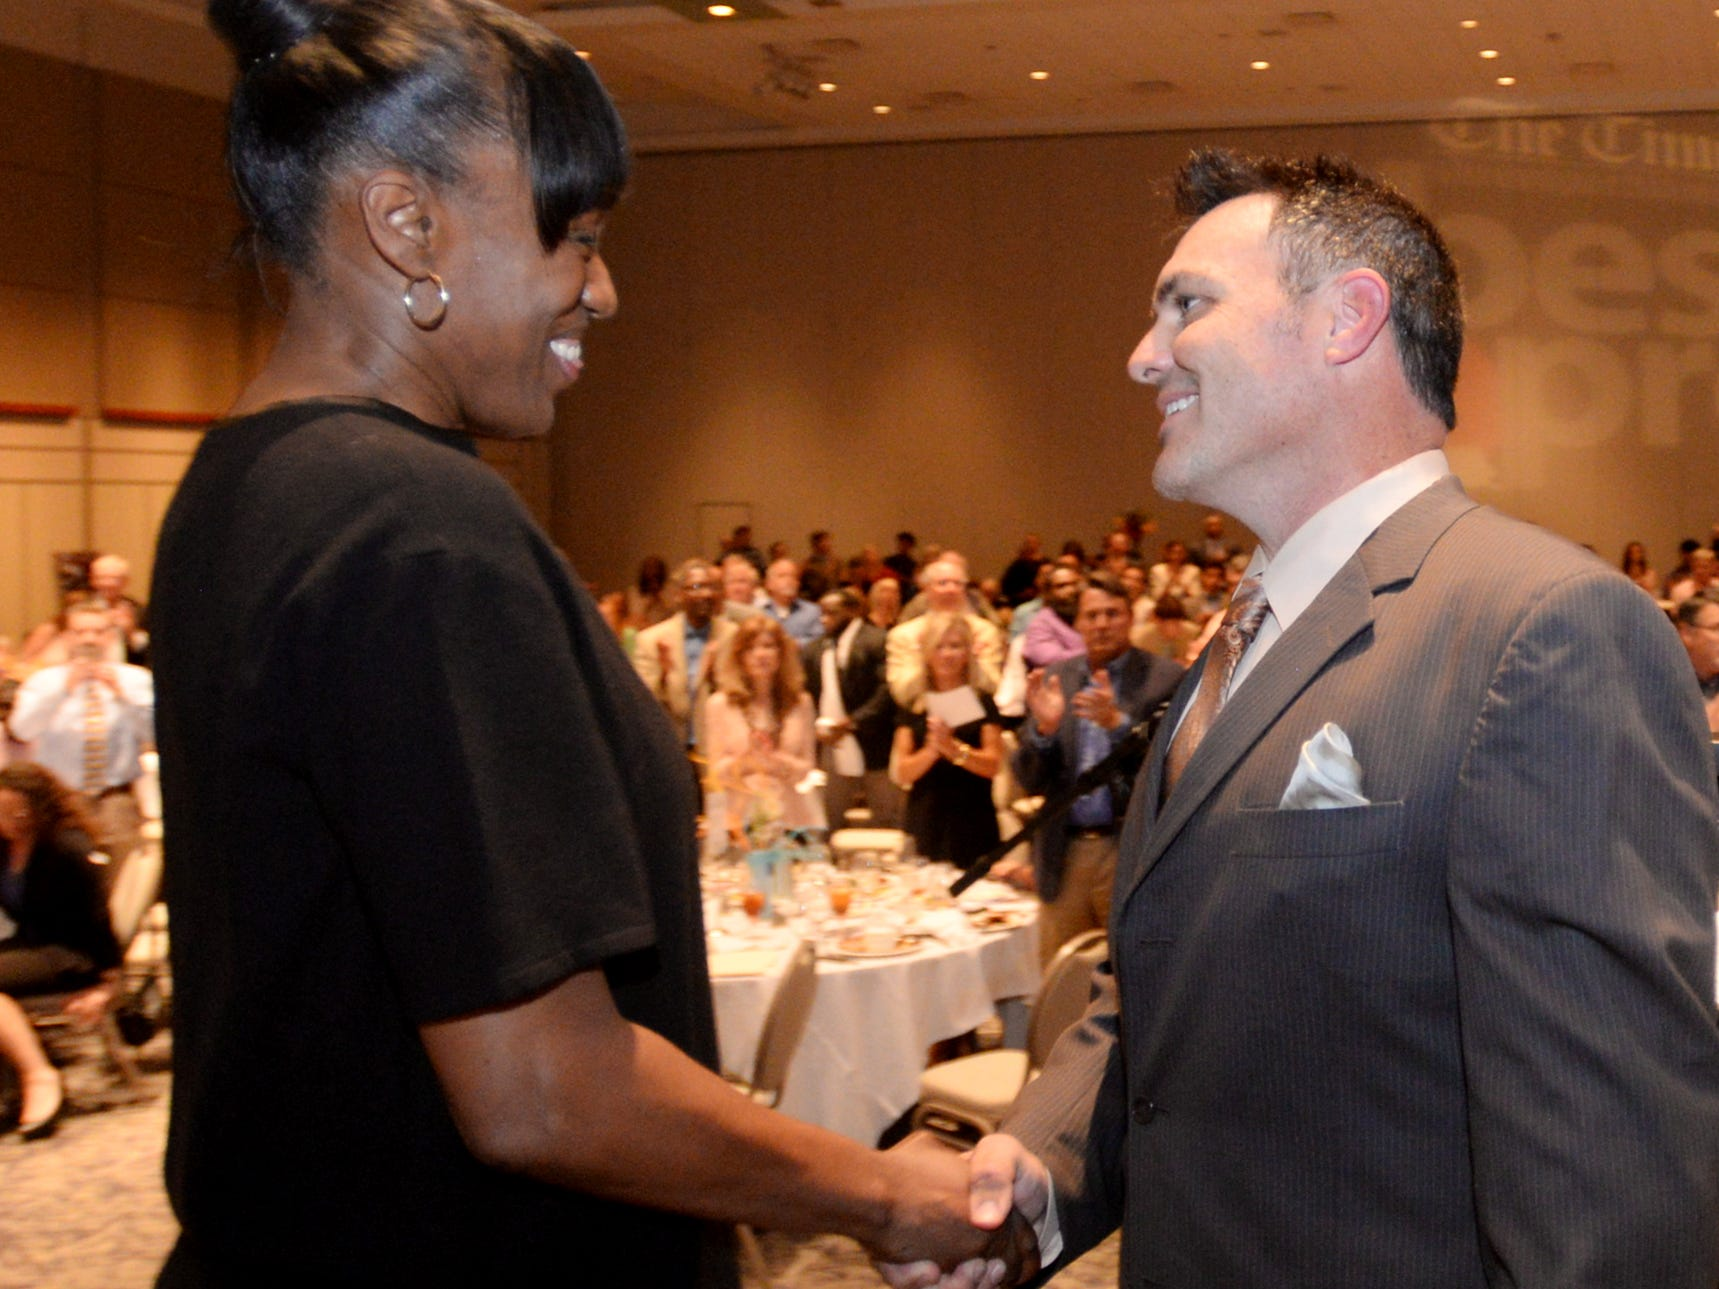 The Times Sports Editor Roy Lang III shakes hands withJackie Joyner-Kersee as he introduces her as the key speaker at the inaugural Best of Northwest Louisiana Preps banquet Tuesday evening at the Shreveport Convention Center.